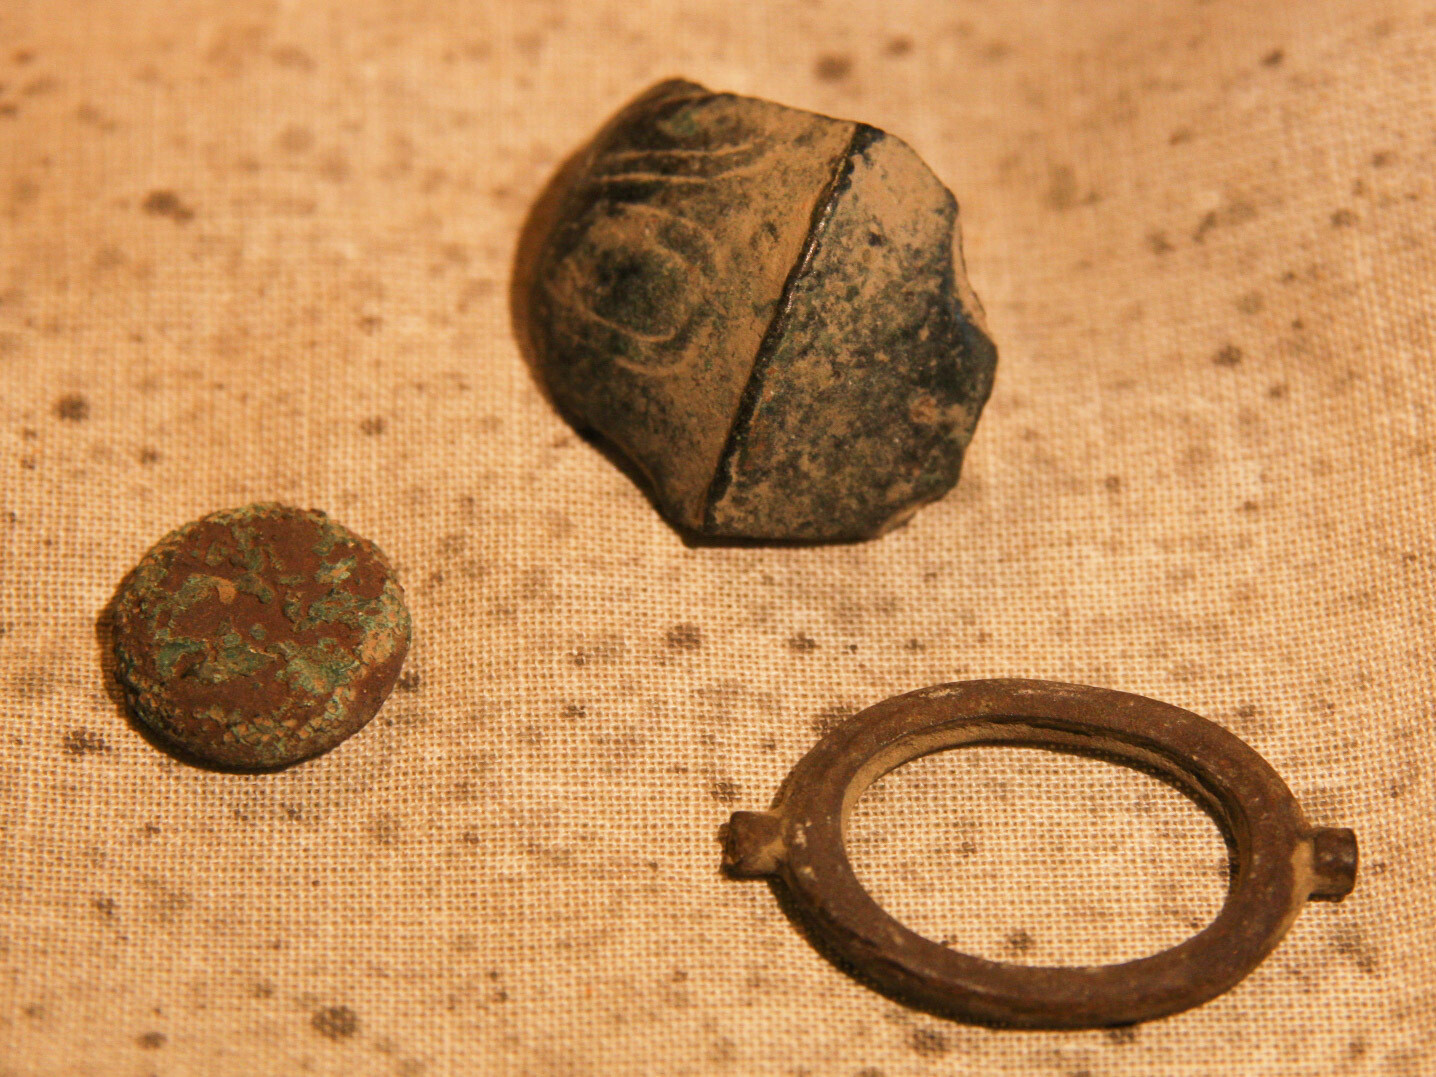 JUST ADDED ON 7/3 - GETTYSBURG - CULP'S HILL - Relic Group including Flower Cuff Button Face